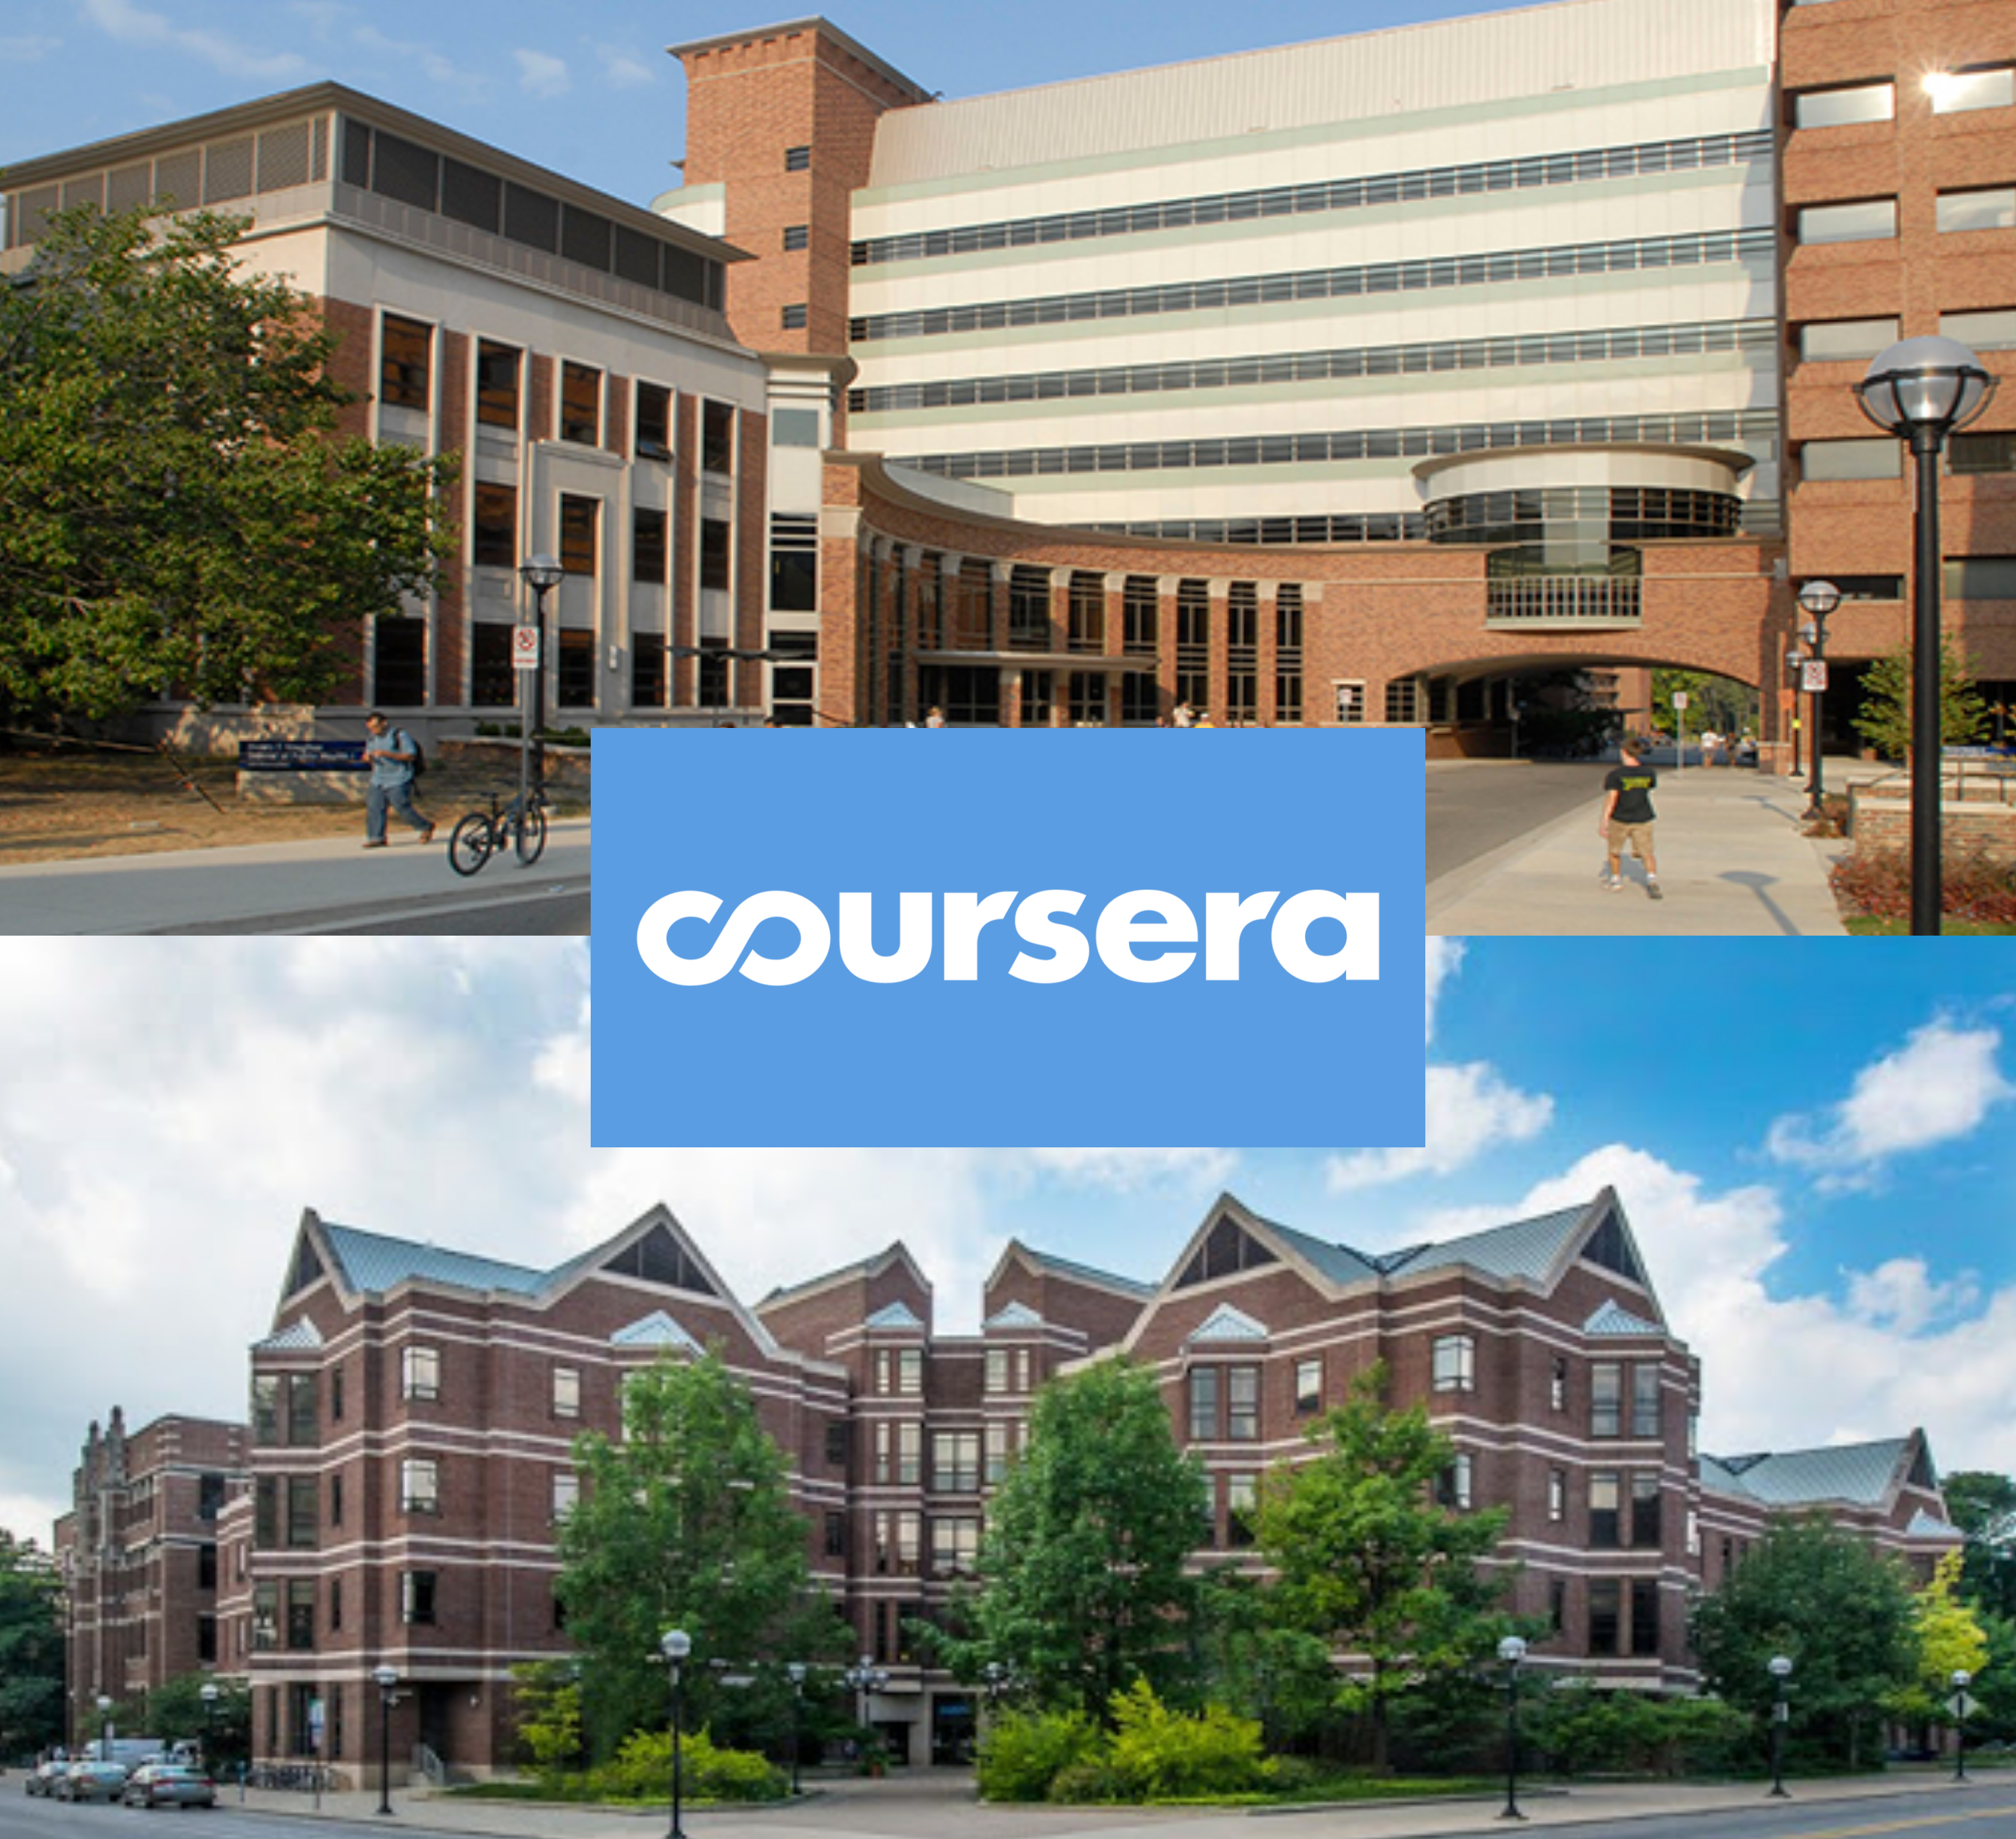 Image of The School of Social Work and the School of Public Health with Coursera logo.